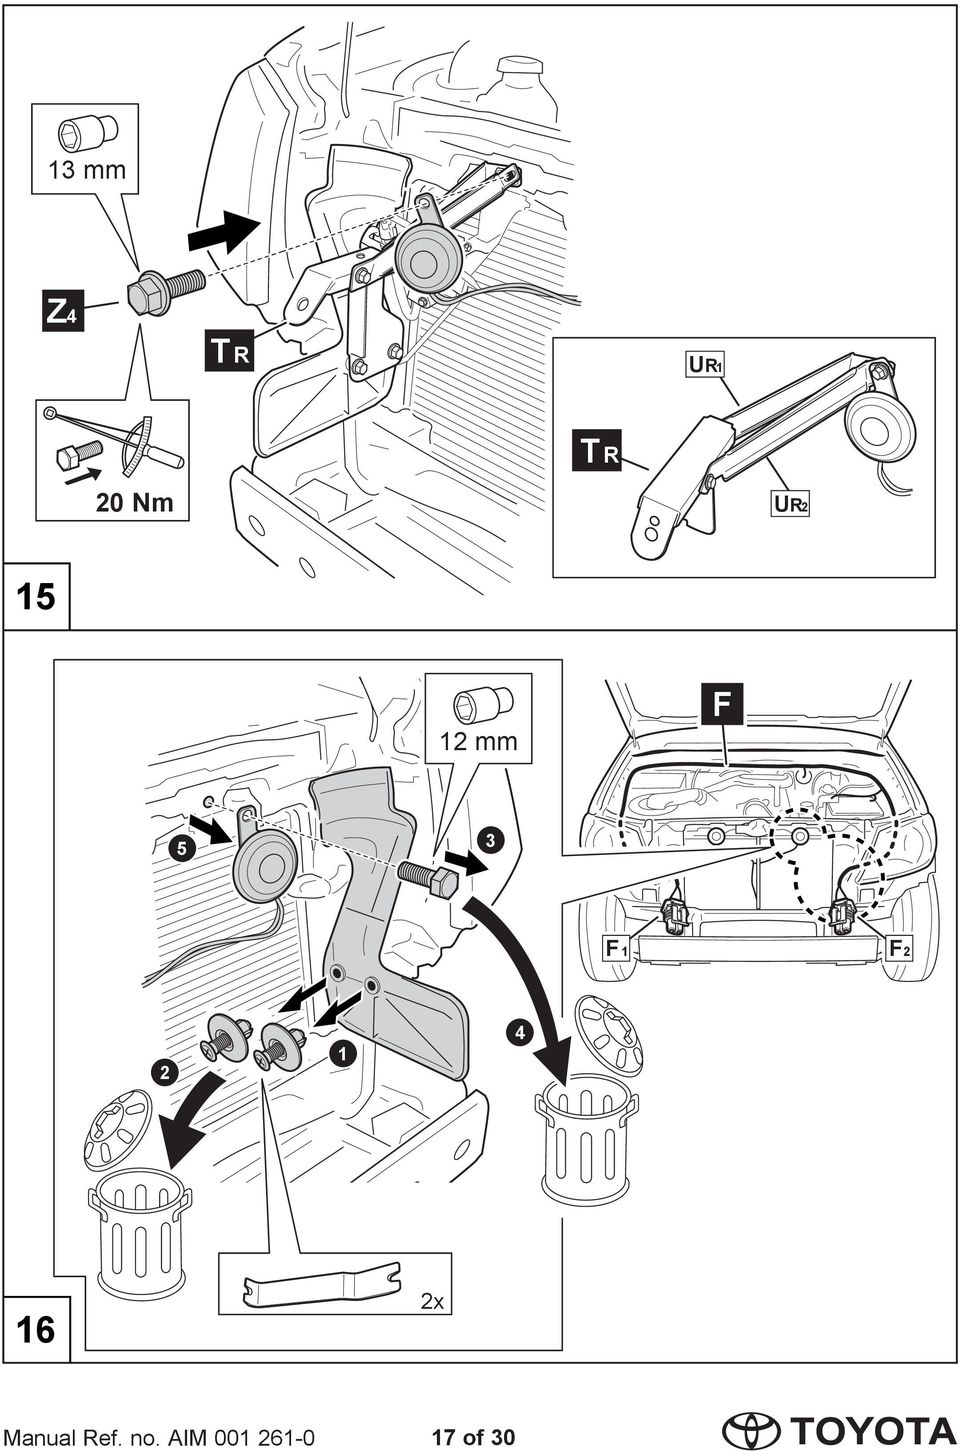 Hilux driving lamp installation instructions model year .